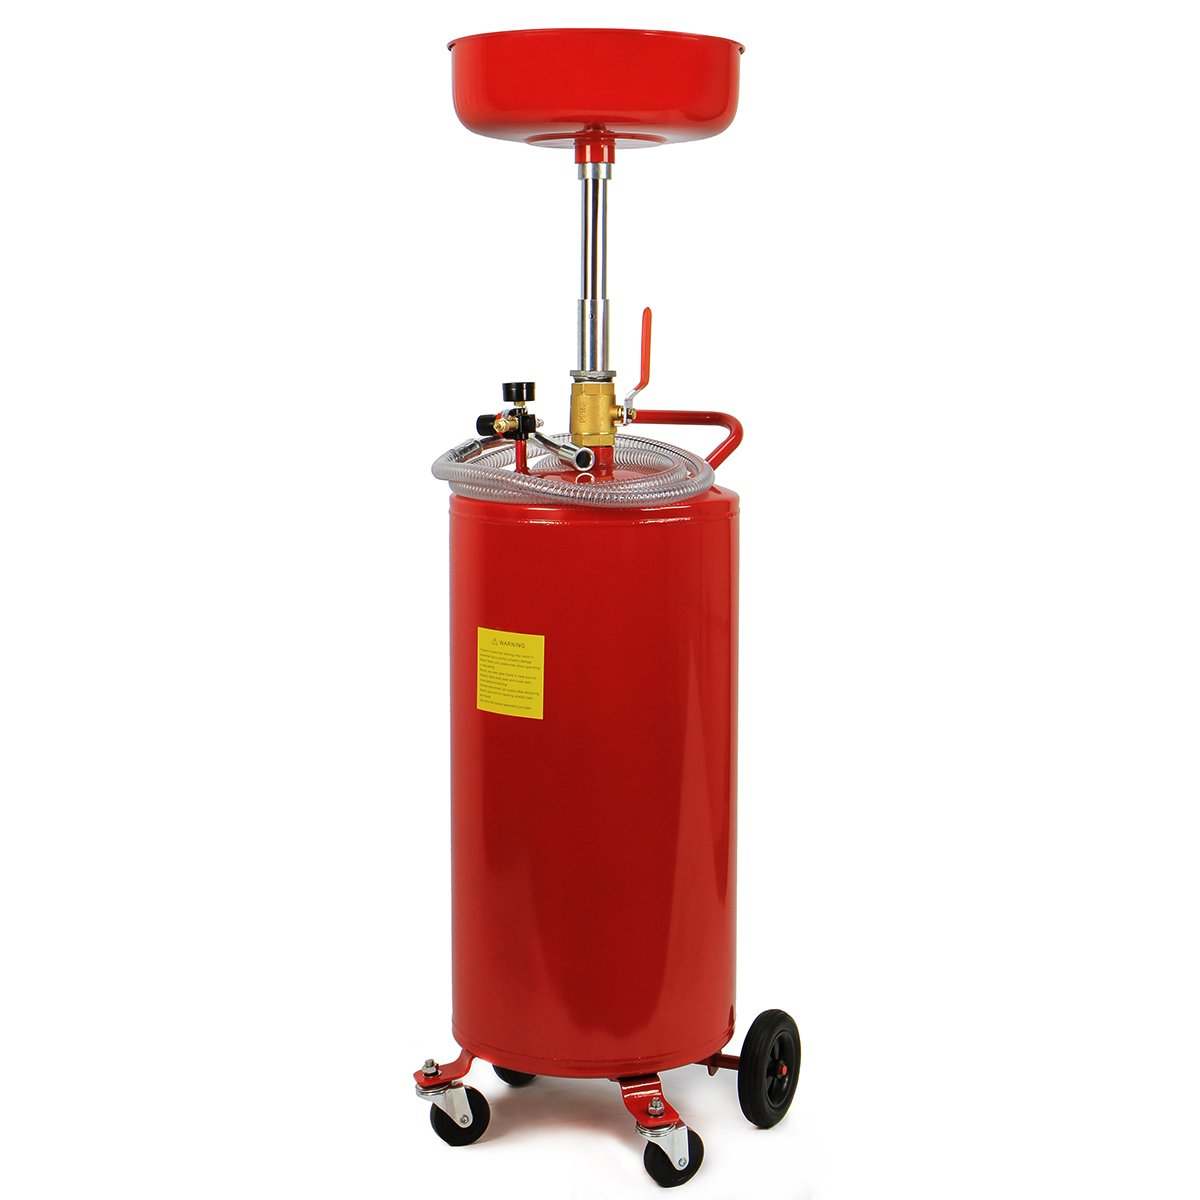 XtremepowerUS 20 Gallon Portable Waste Oil Drain Tank Air Operated Drainage Adjustable Funnel Height with Wheel, Red by XtremepowerUS